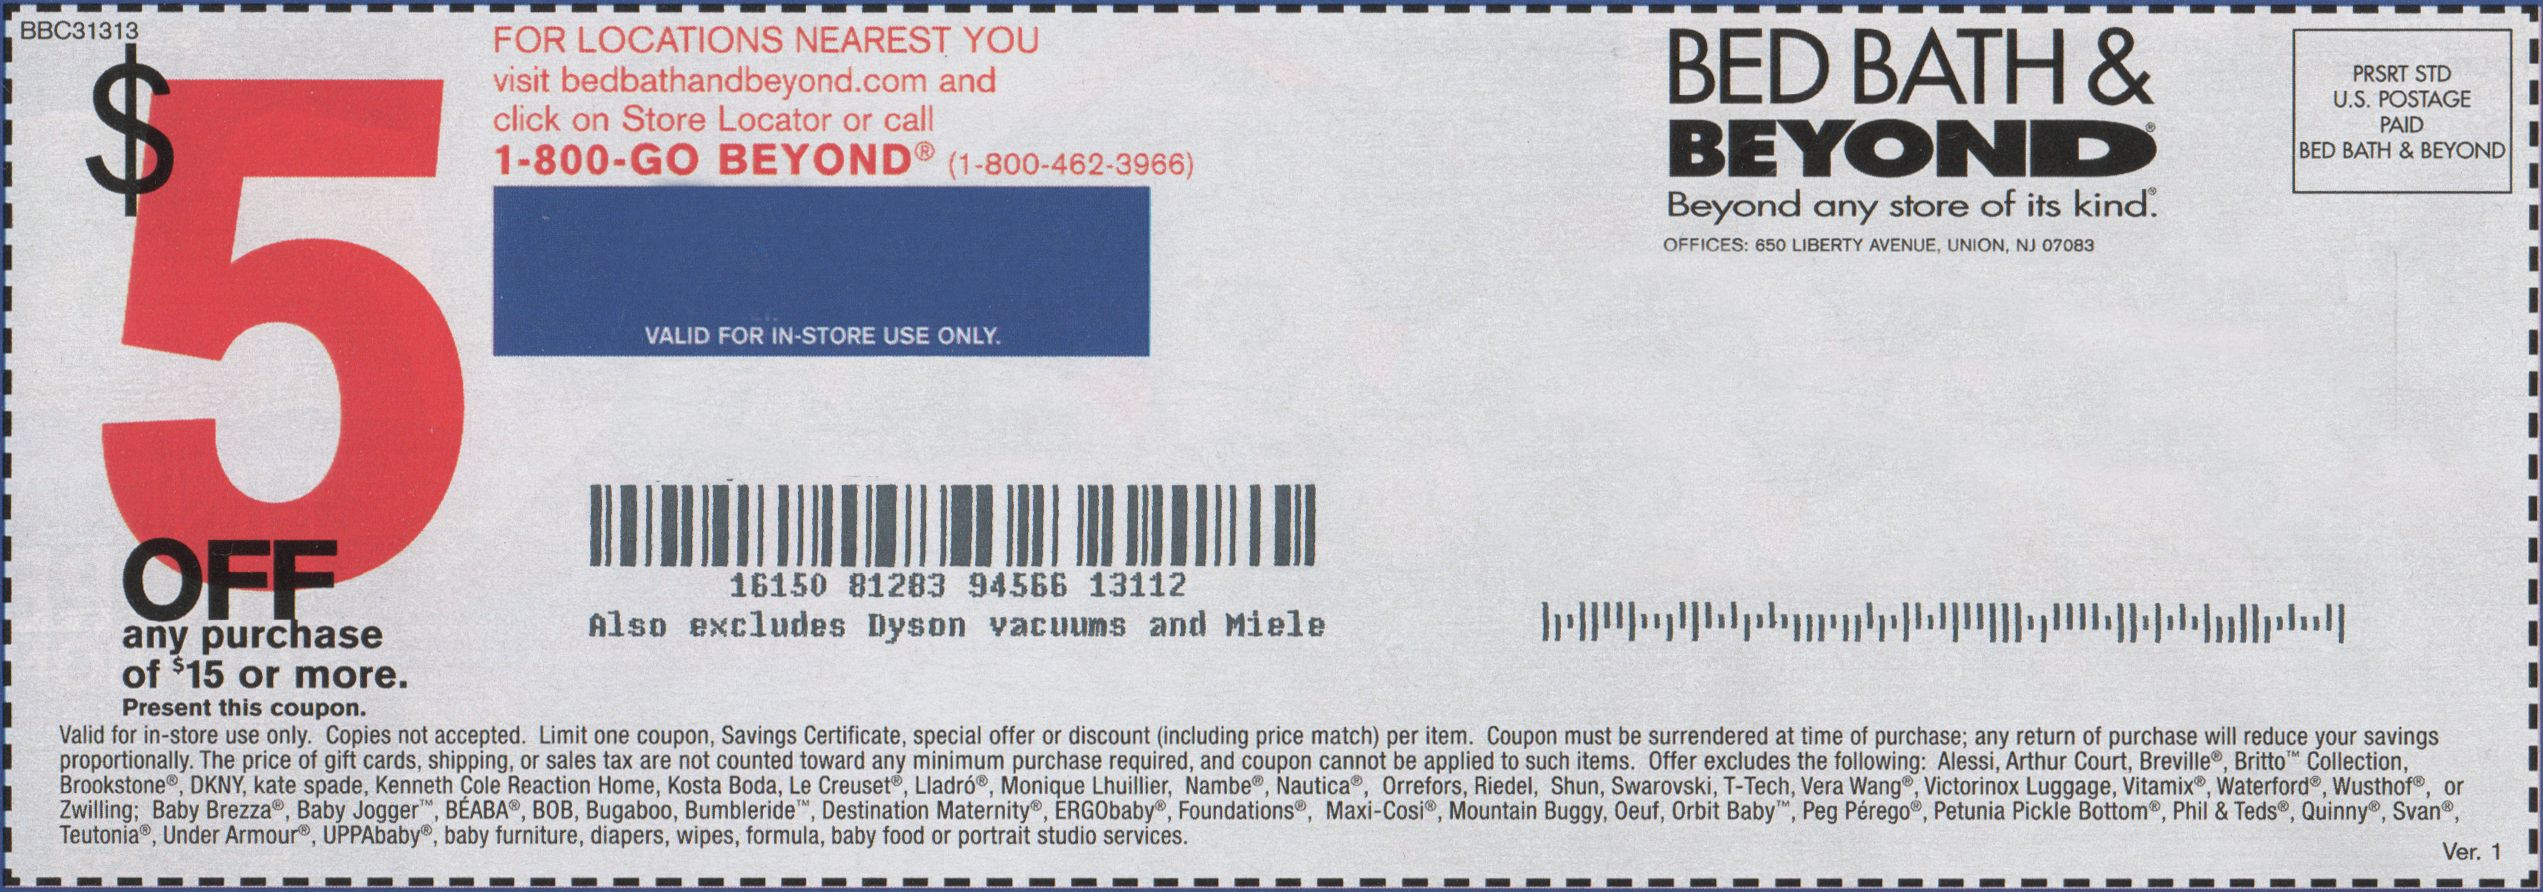 Getting Valid Bed Bath 20 Coupon Printable, Bed Bath & Beyond Inc Is - Free Printable Bed Bath And Beyond 20 Off Coupon